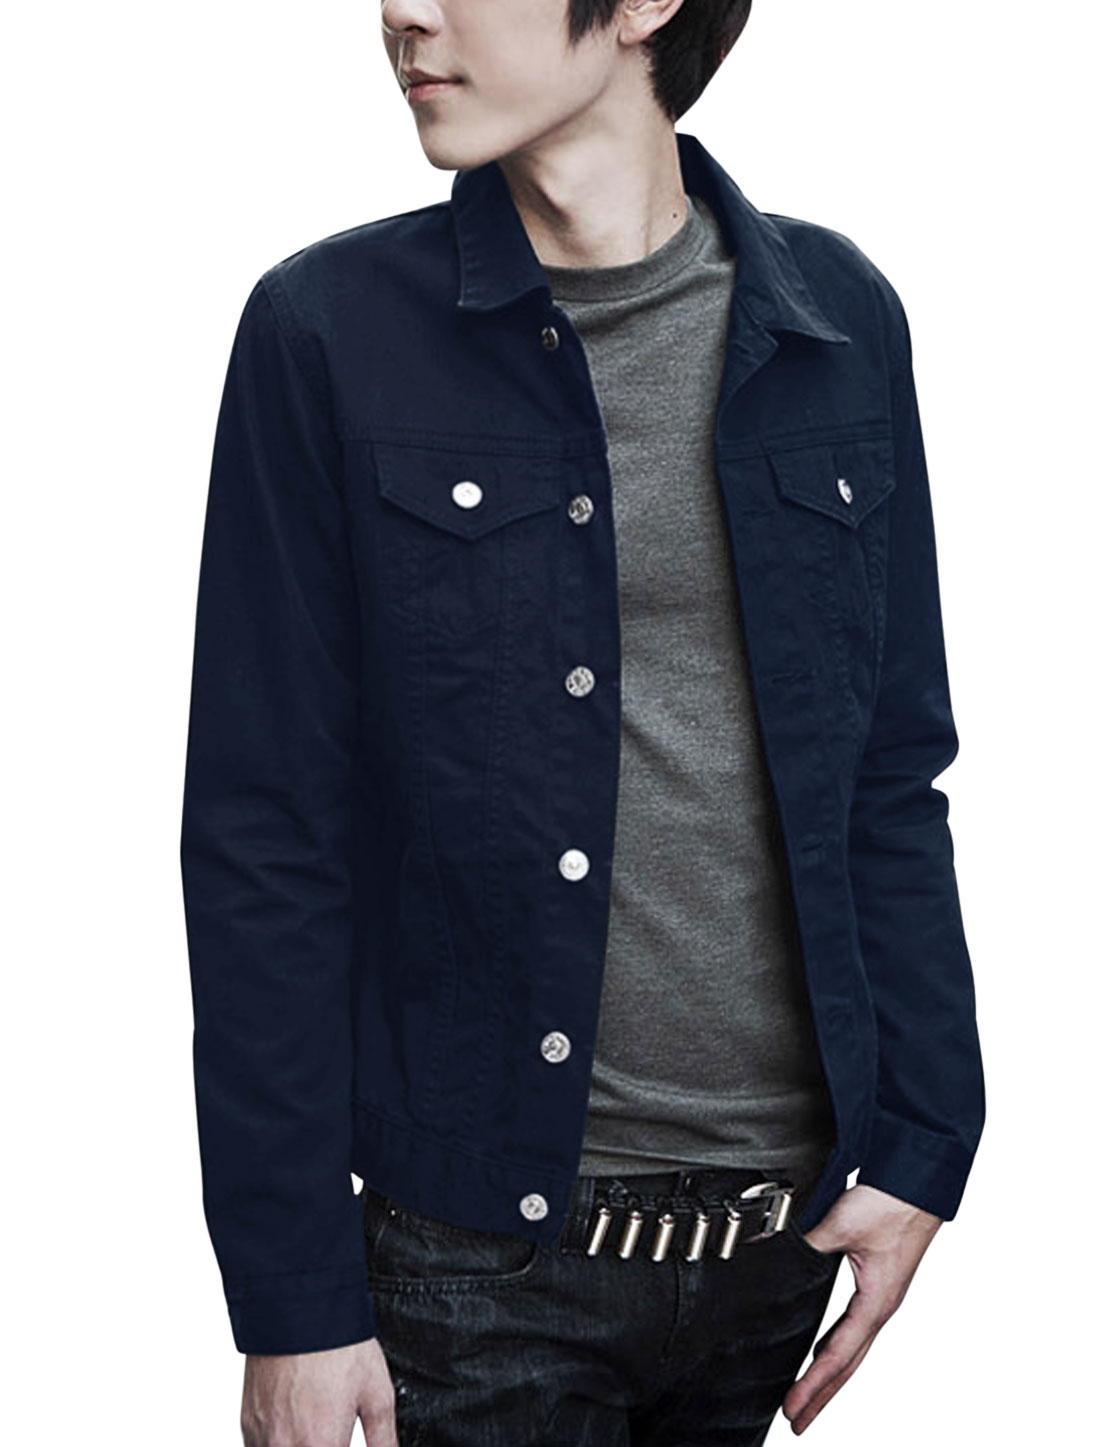 Button Closed Turn Down Collar Navy Blue Jacket for Man M